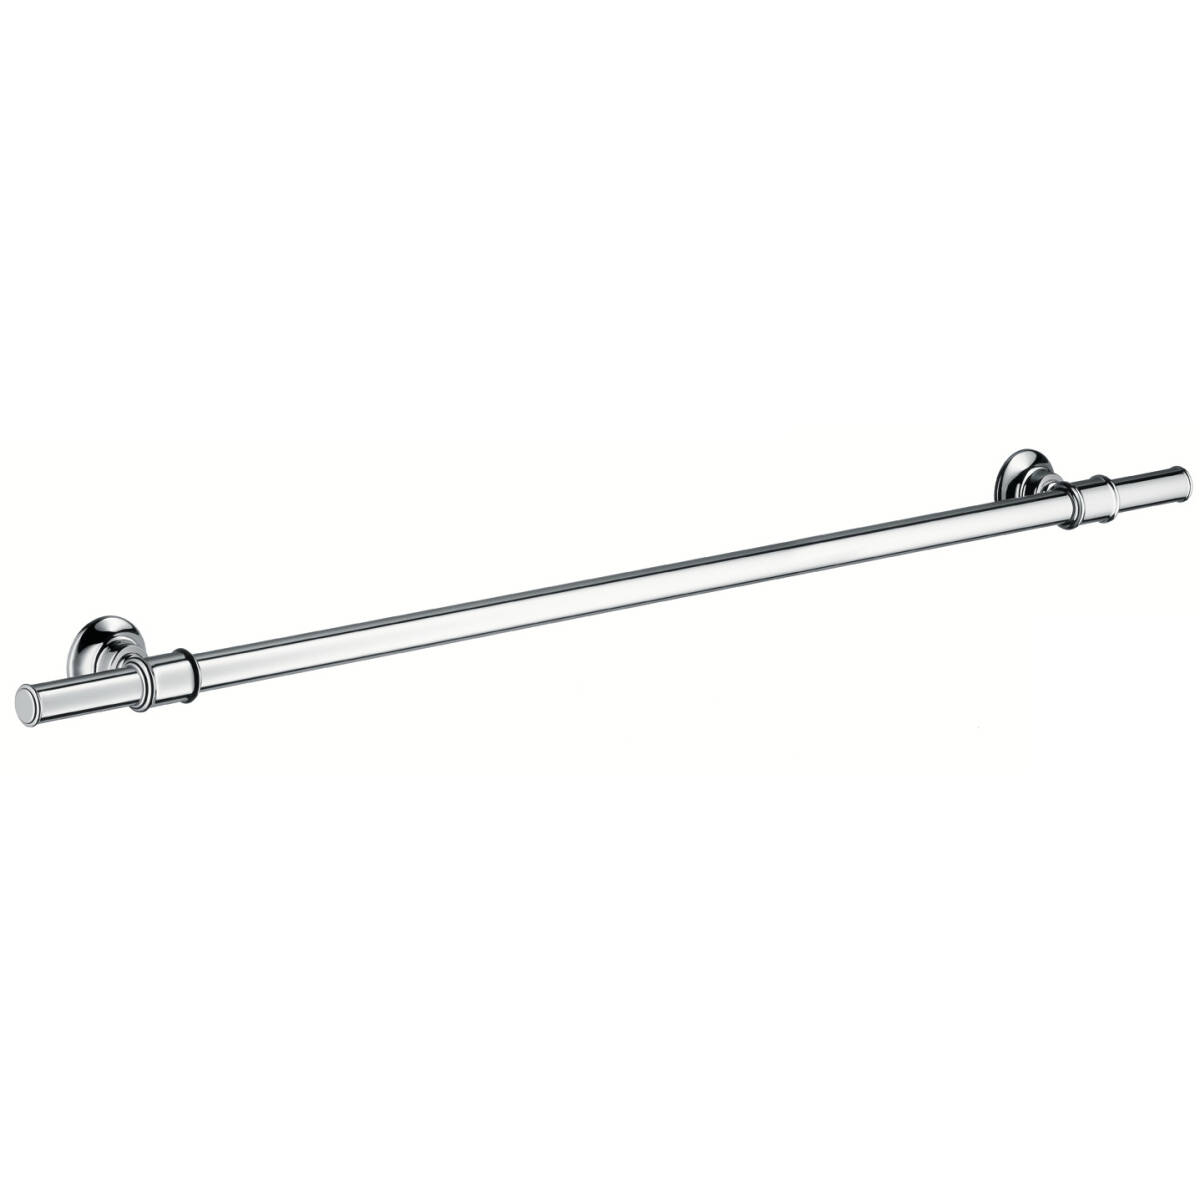 Bath towel rail 800 mm, Brushed Bronze, 42080140